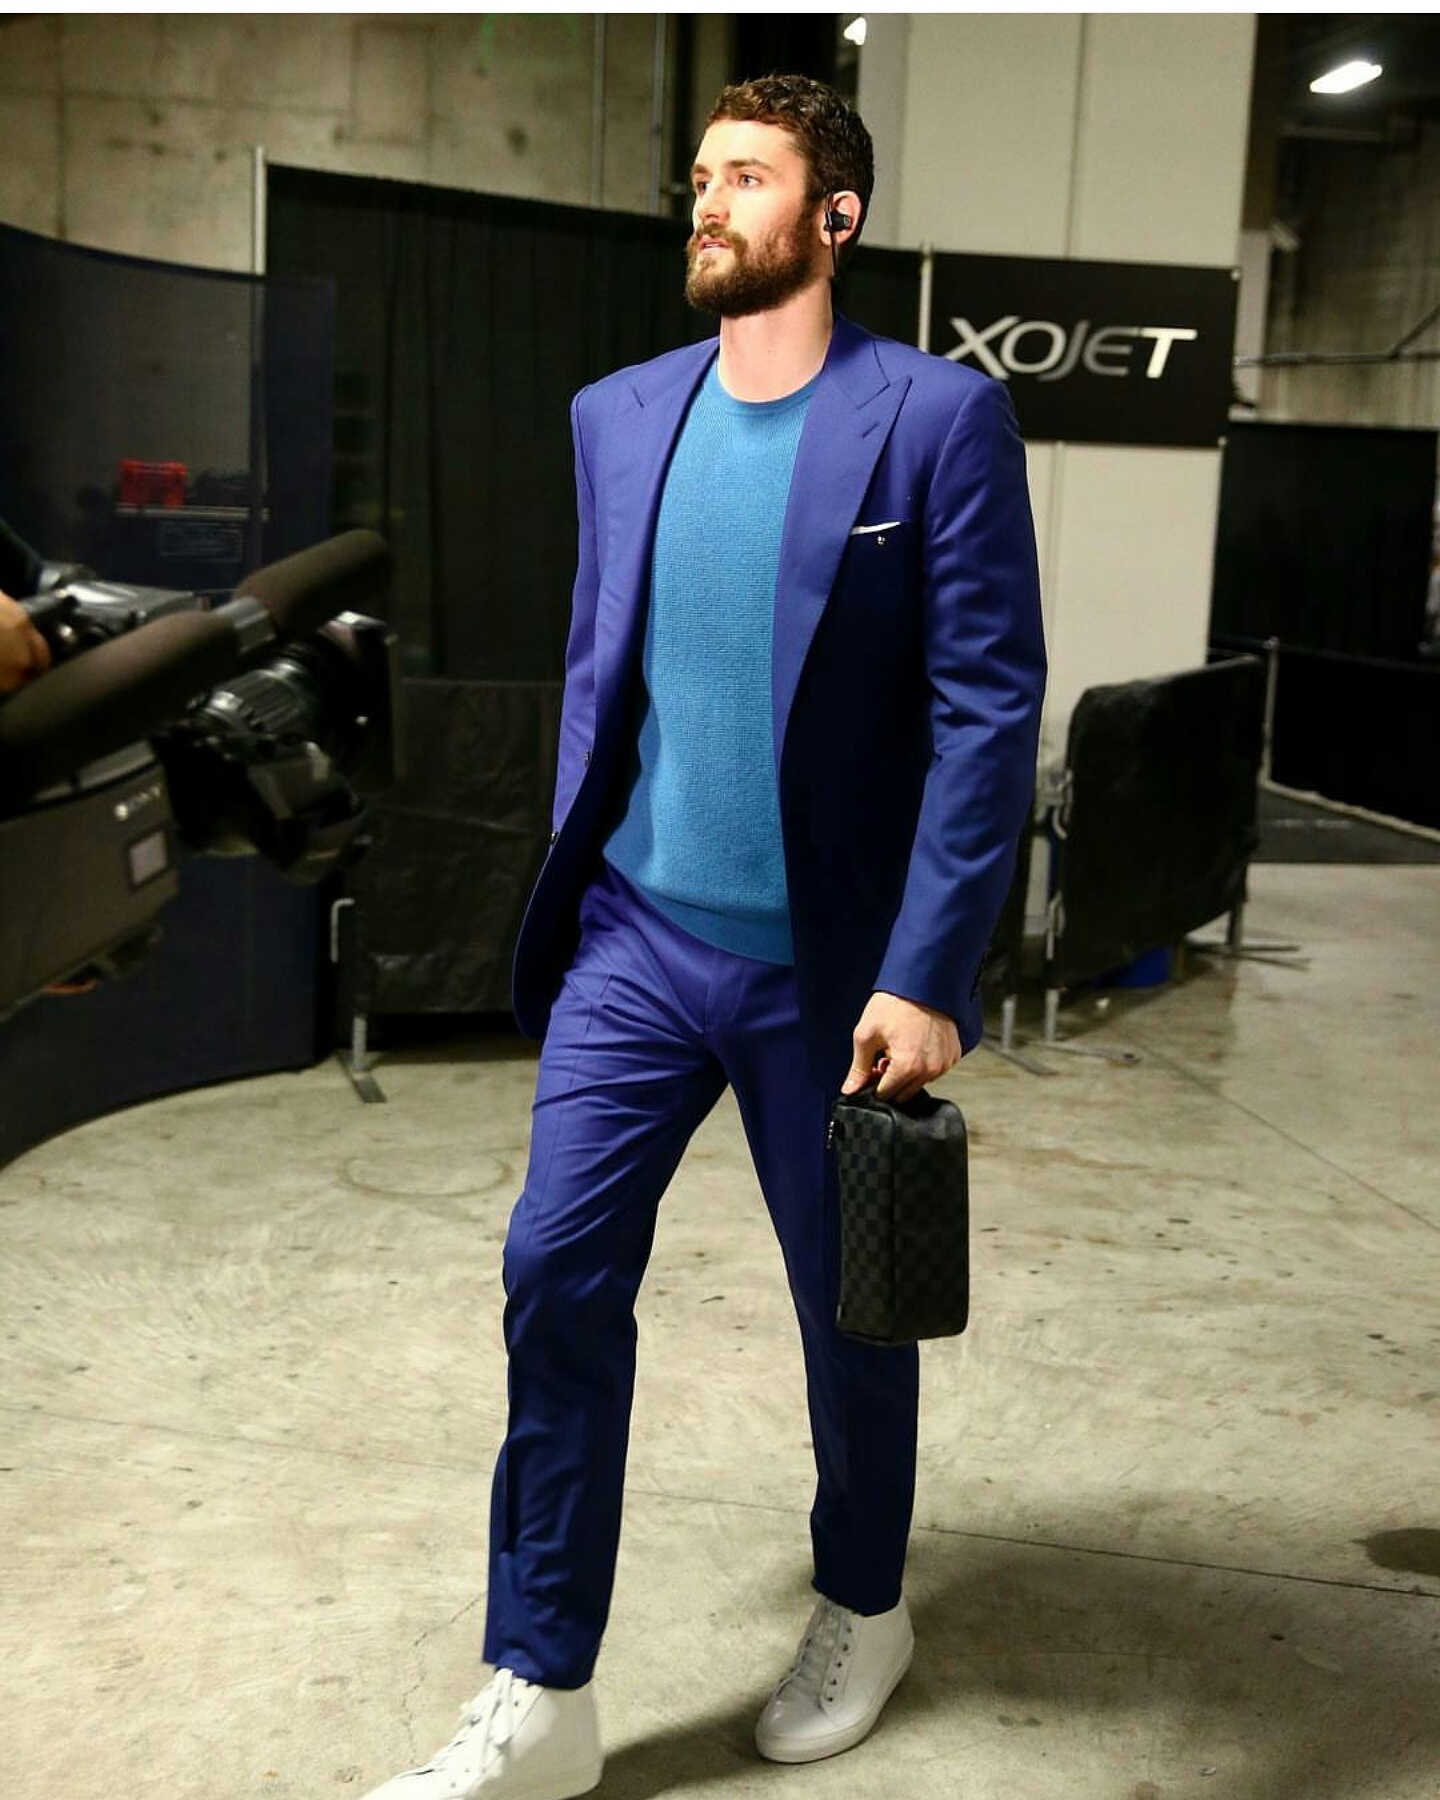 STYLE: NBA Kevin Love's Instagram 2016 NBA Finals Ralph Lauren Suit